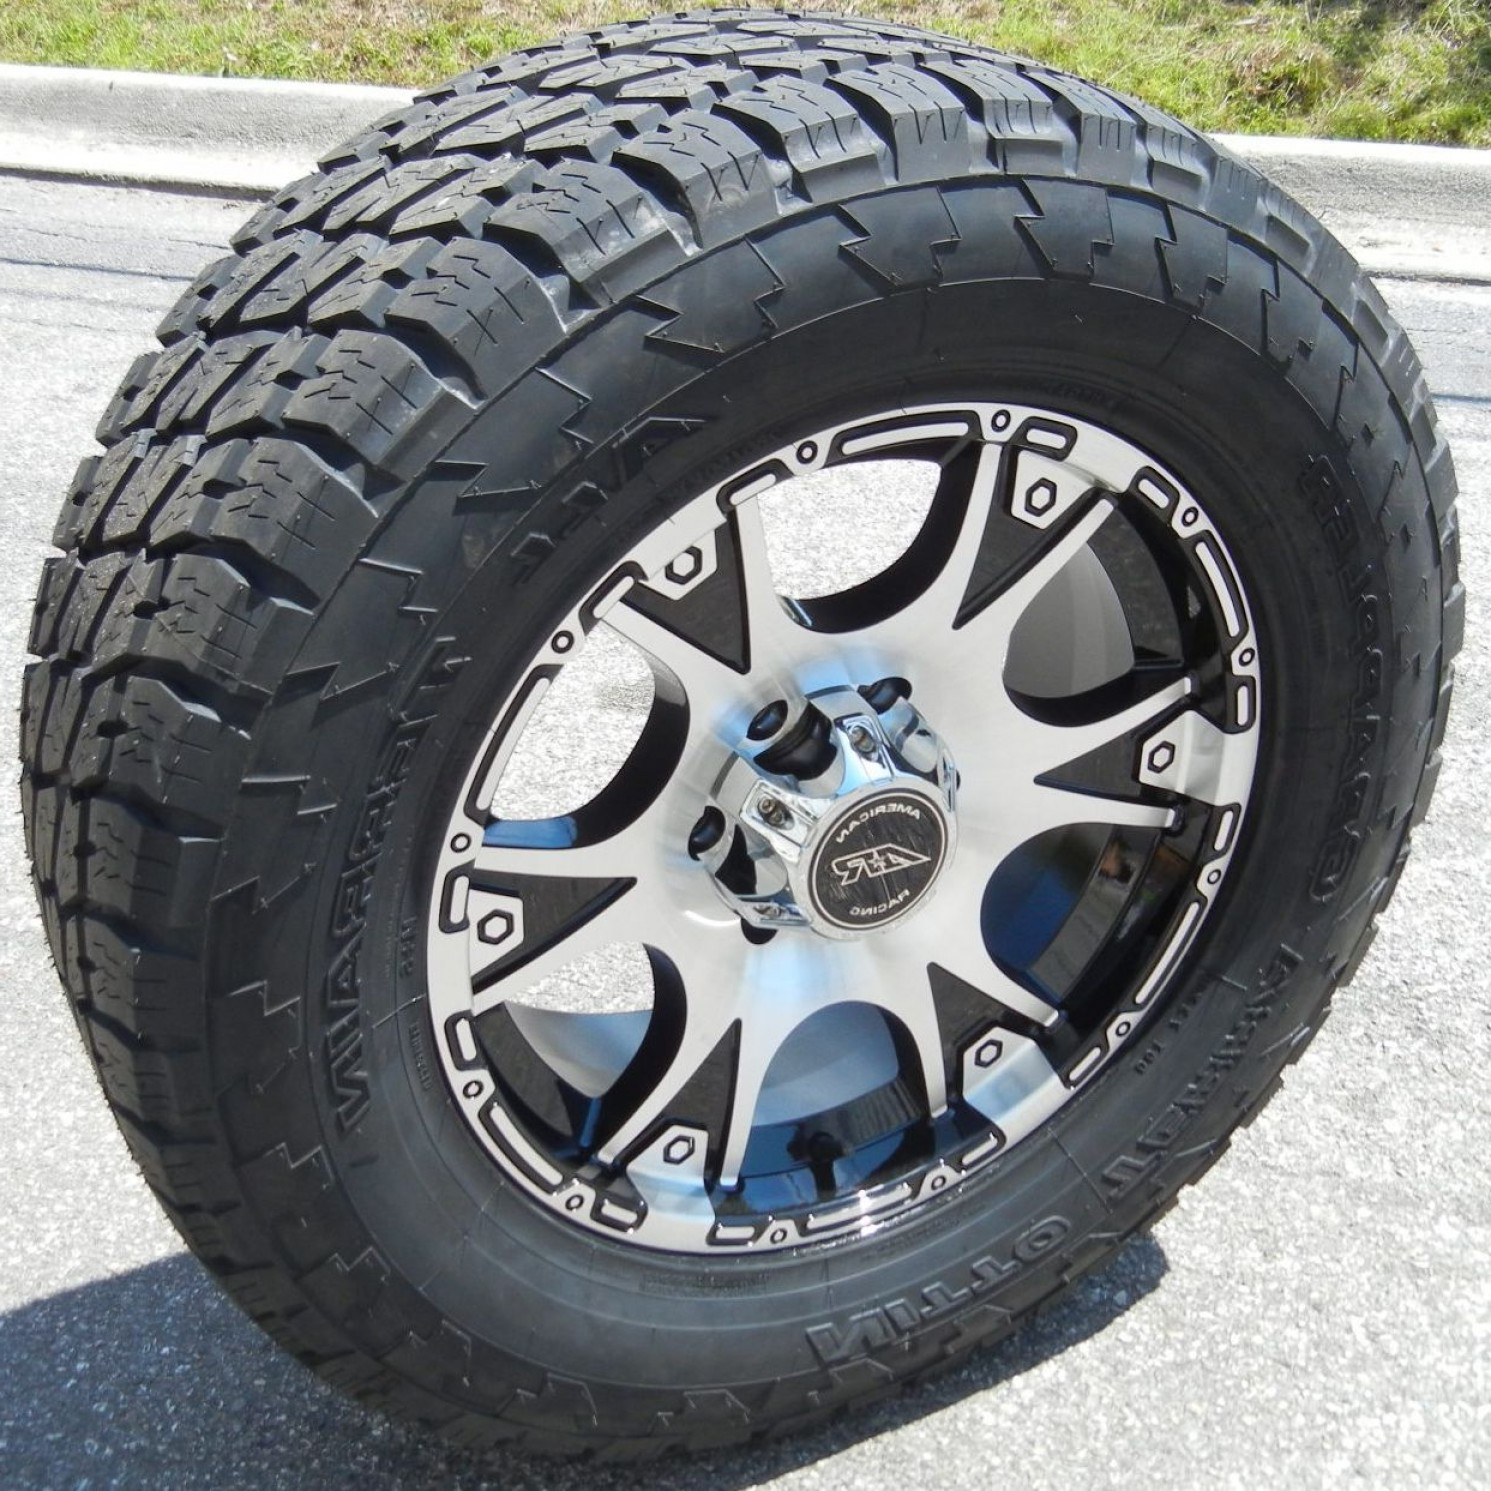 American Racing Vector Rims: American Racing Dagger Wheels Rims Nitto Terra Grappler Ford F